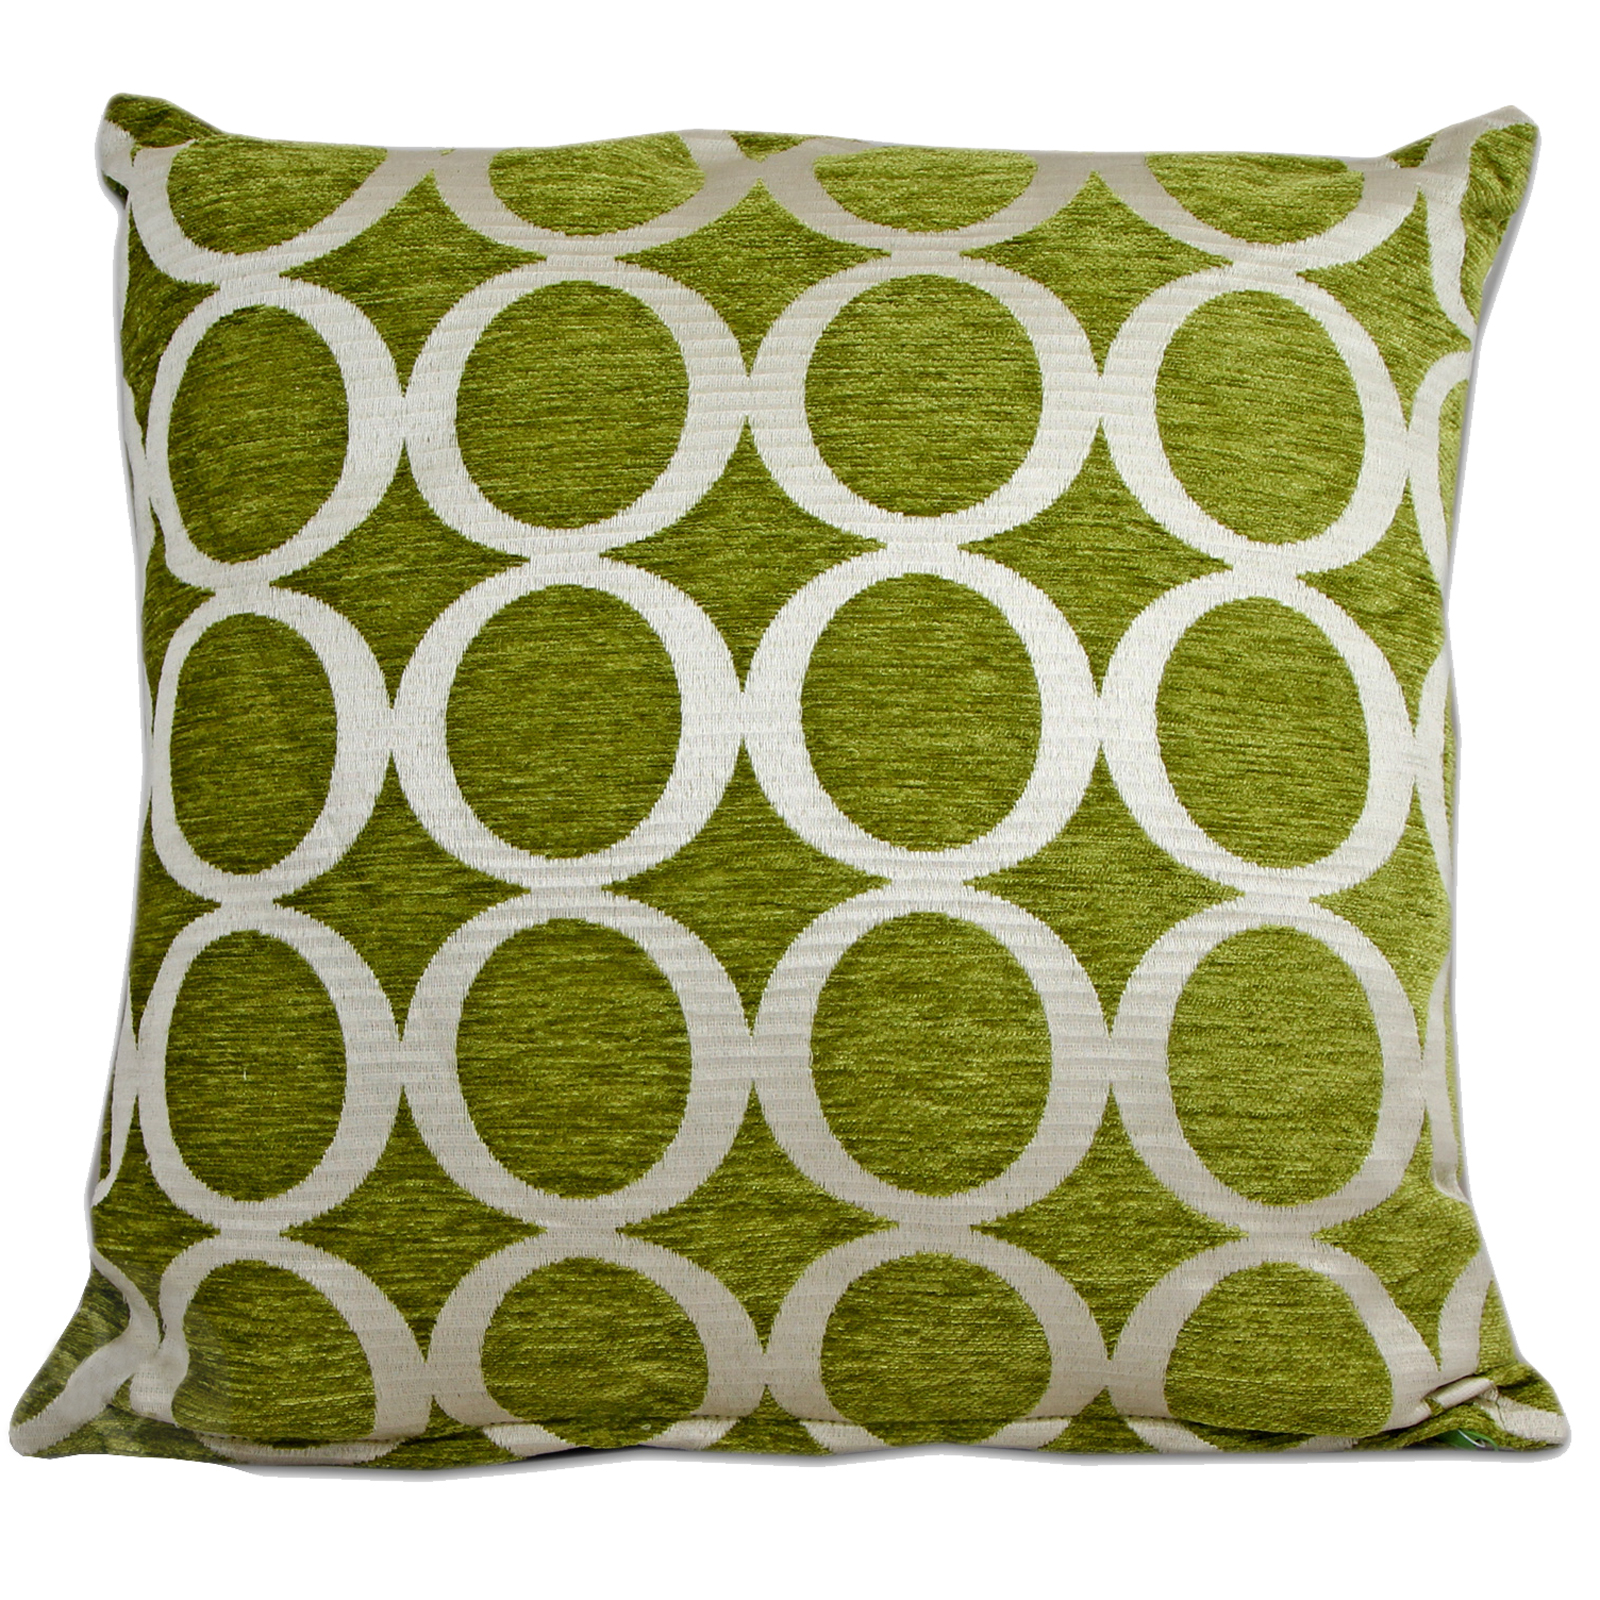 Retro-Modern-Chenille-Cushions-2-Sizes-Small-Large-Scatter-Cushion-Covers